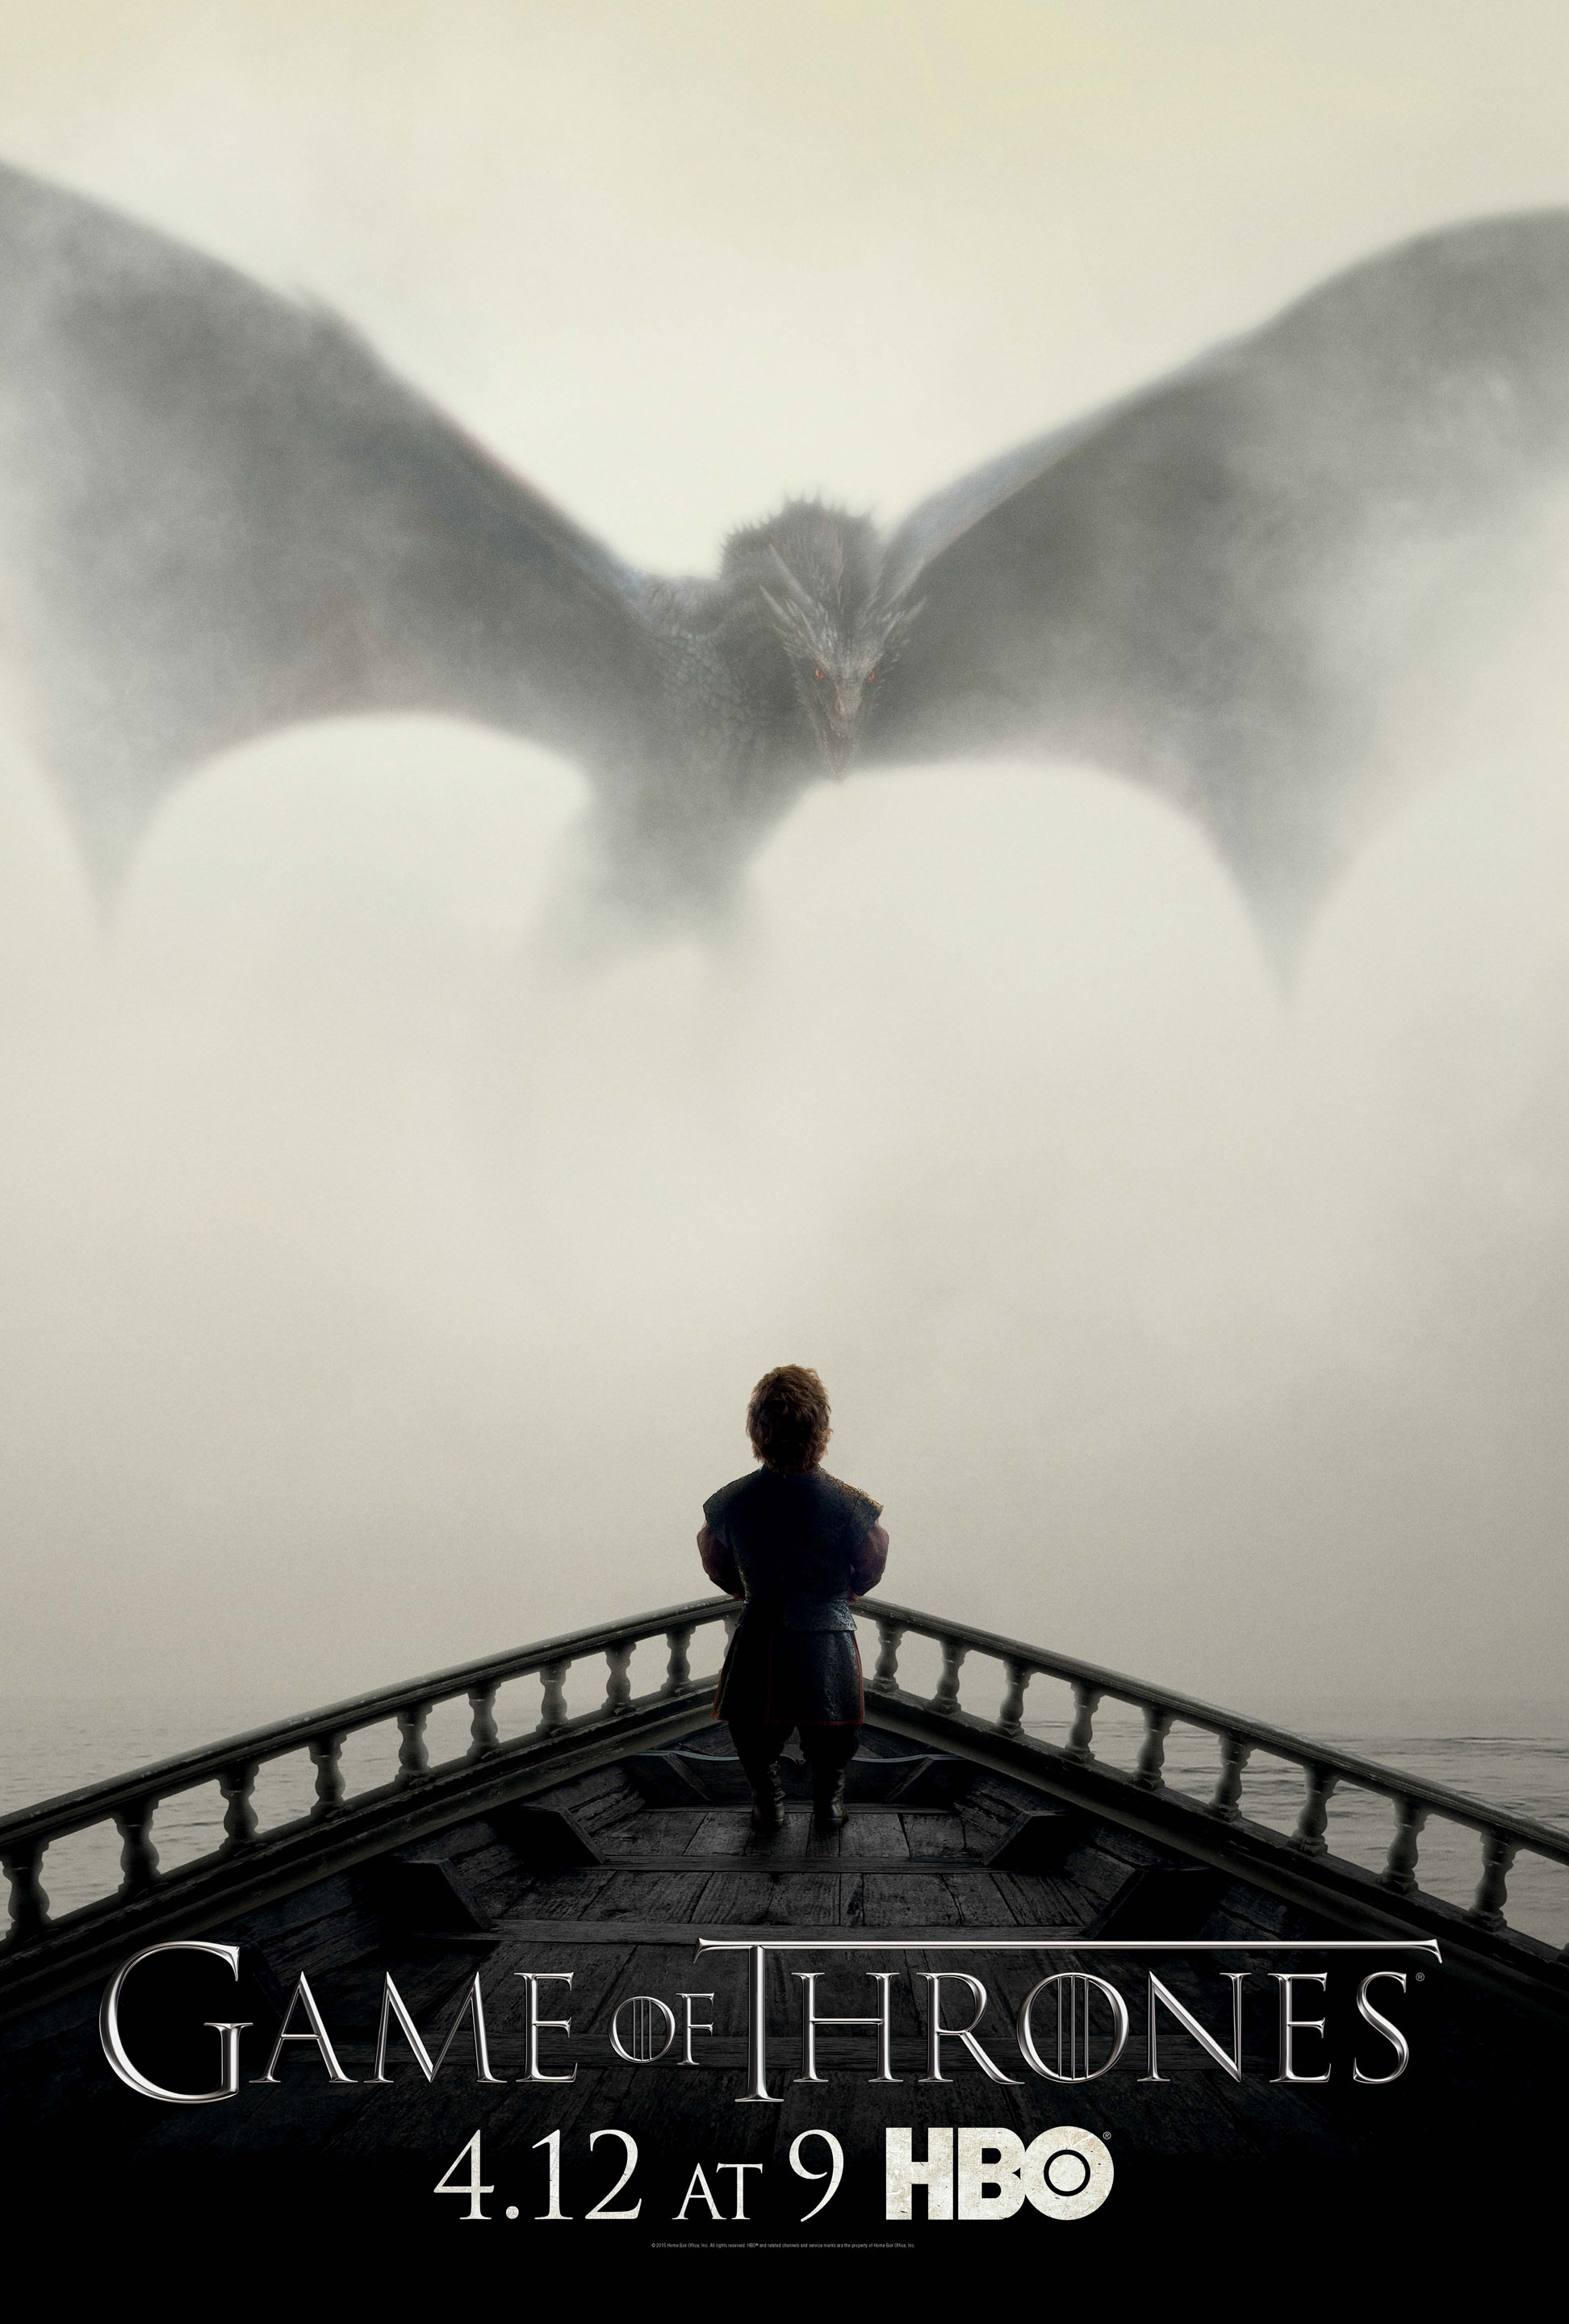 HBO will live stream the Season 5 red carpet premiere of 'Game of Thrones' on Monday